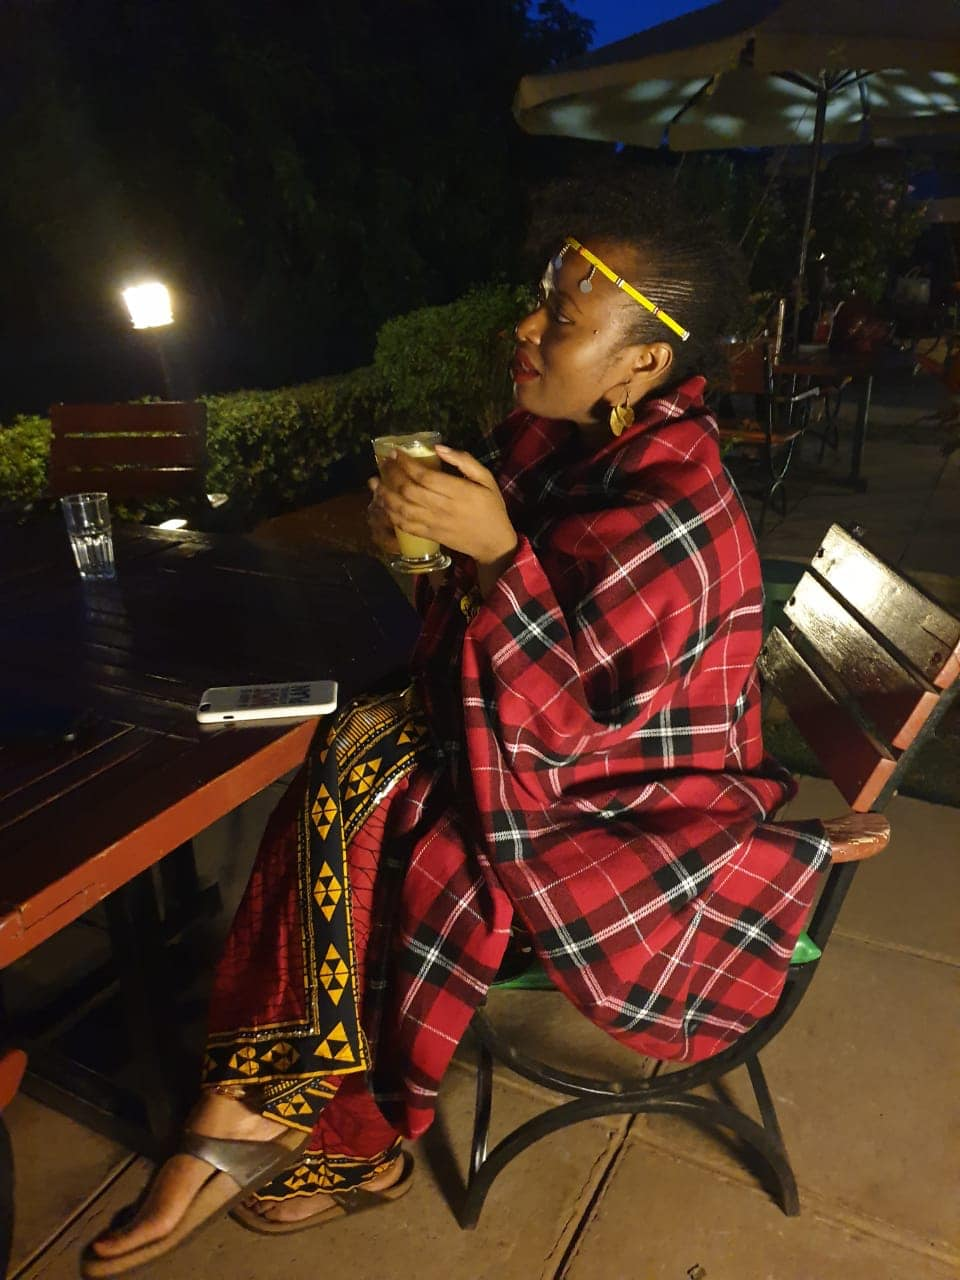 I bought this traditional Maasai throw at the market at Prestige Plaza. It is a gift but chale I was cold so I borrowed it. This photo was taken at Mama Ashanti, a West African restaurant in Nairobi. I wasn't too hungry so I only ordered suya. If I lived in Nairobi though I would return to Mama Ashanti everyday to sit in their garden and drink their dawa. This is the best dawa I have ever had. Go Google dawa. Its a hot ginger and lime drink and its sooo good.